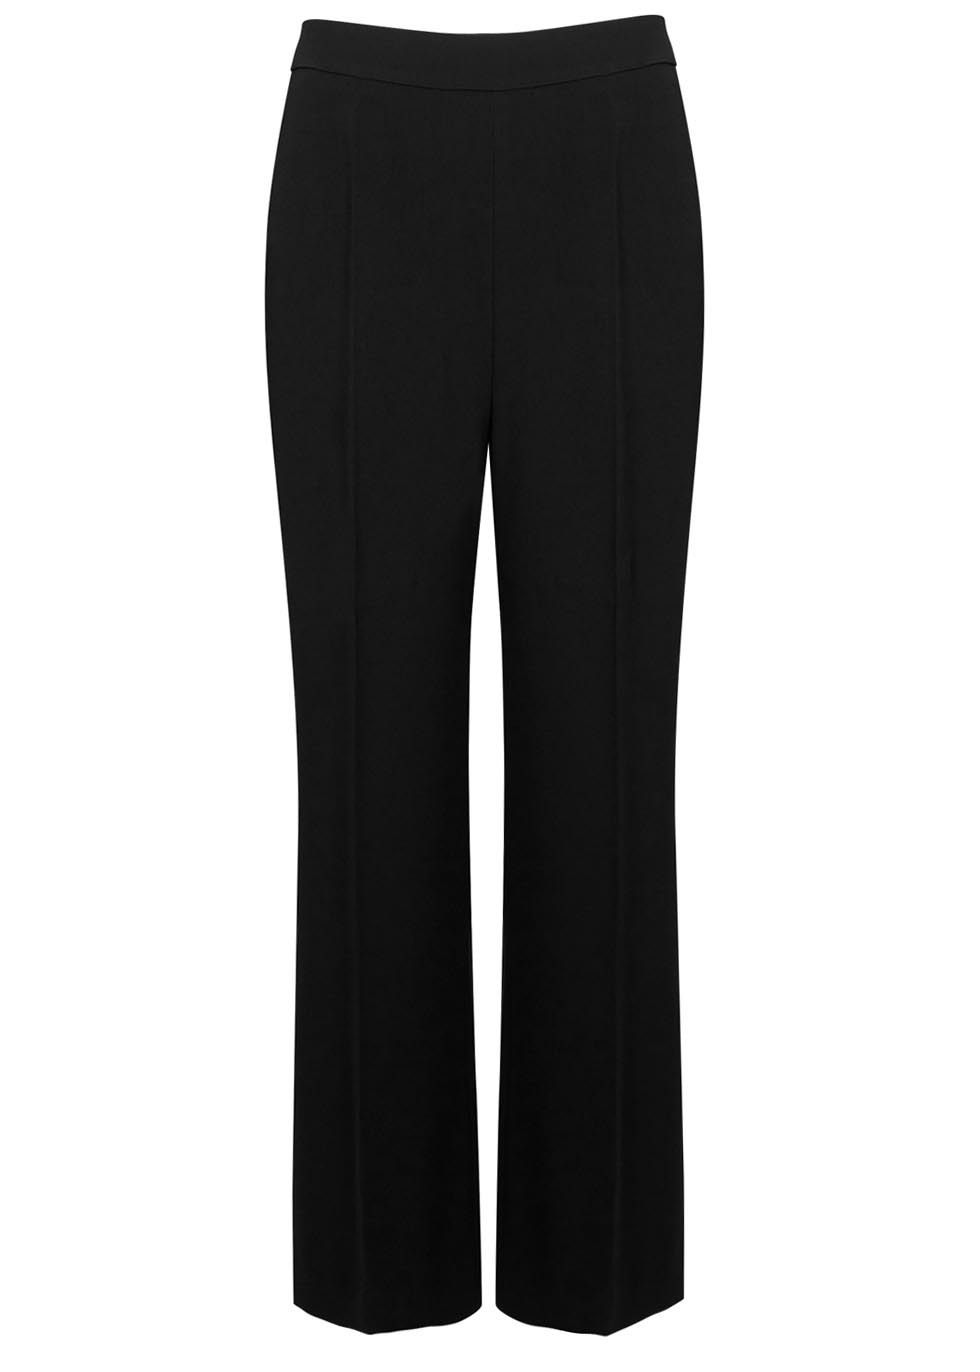 Black Wide Leg Crepe Trousers - length: standard; pattern: plain; waist: mid/regular rise; predominant colour: black; fibres: viscose/rayon - stretch; texture group: crepes; fit: straight leg; pattern type: fabric; style: standard; occasions: creative work; season: s/s 2016; wardrobe: basic